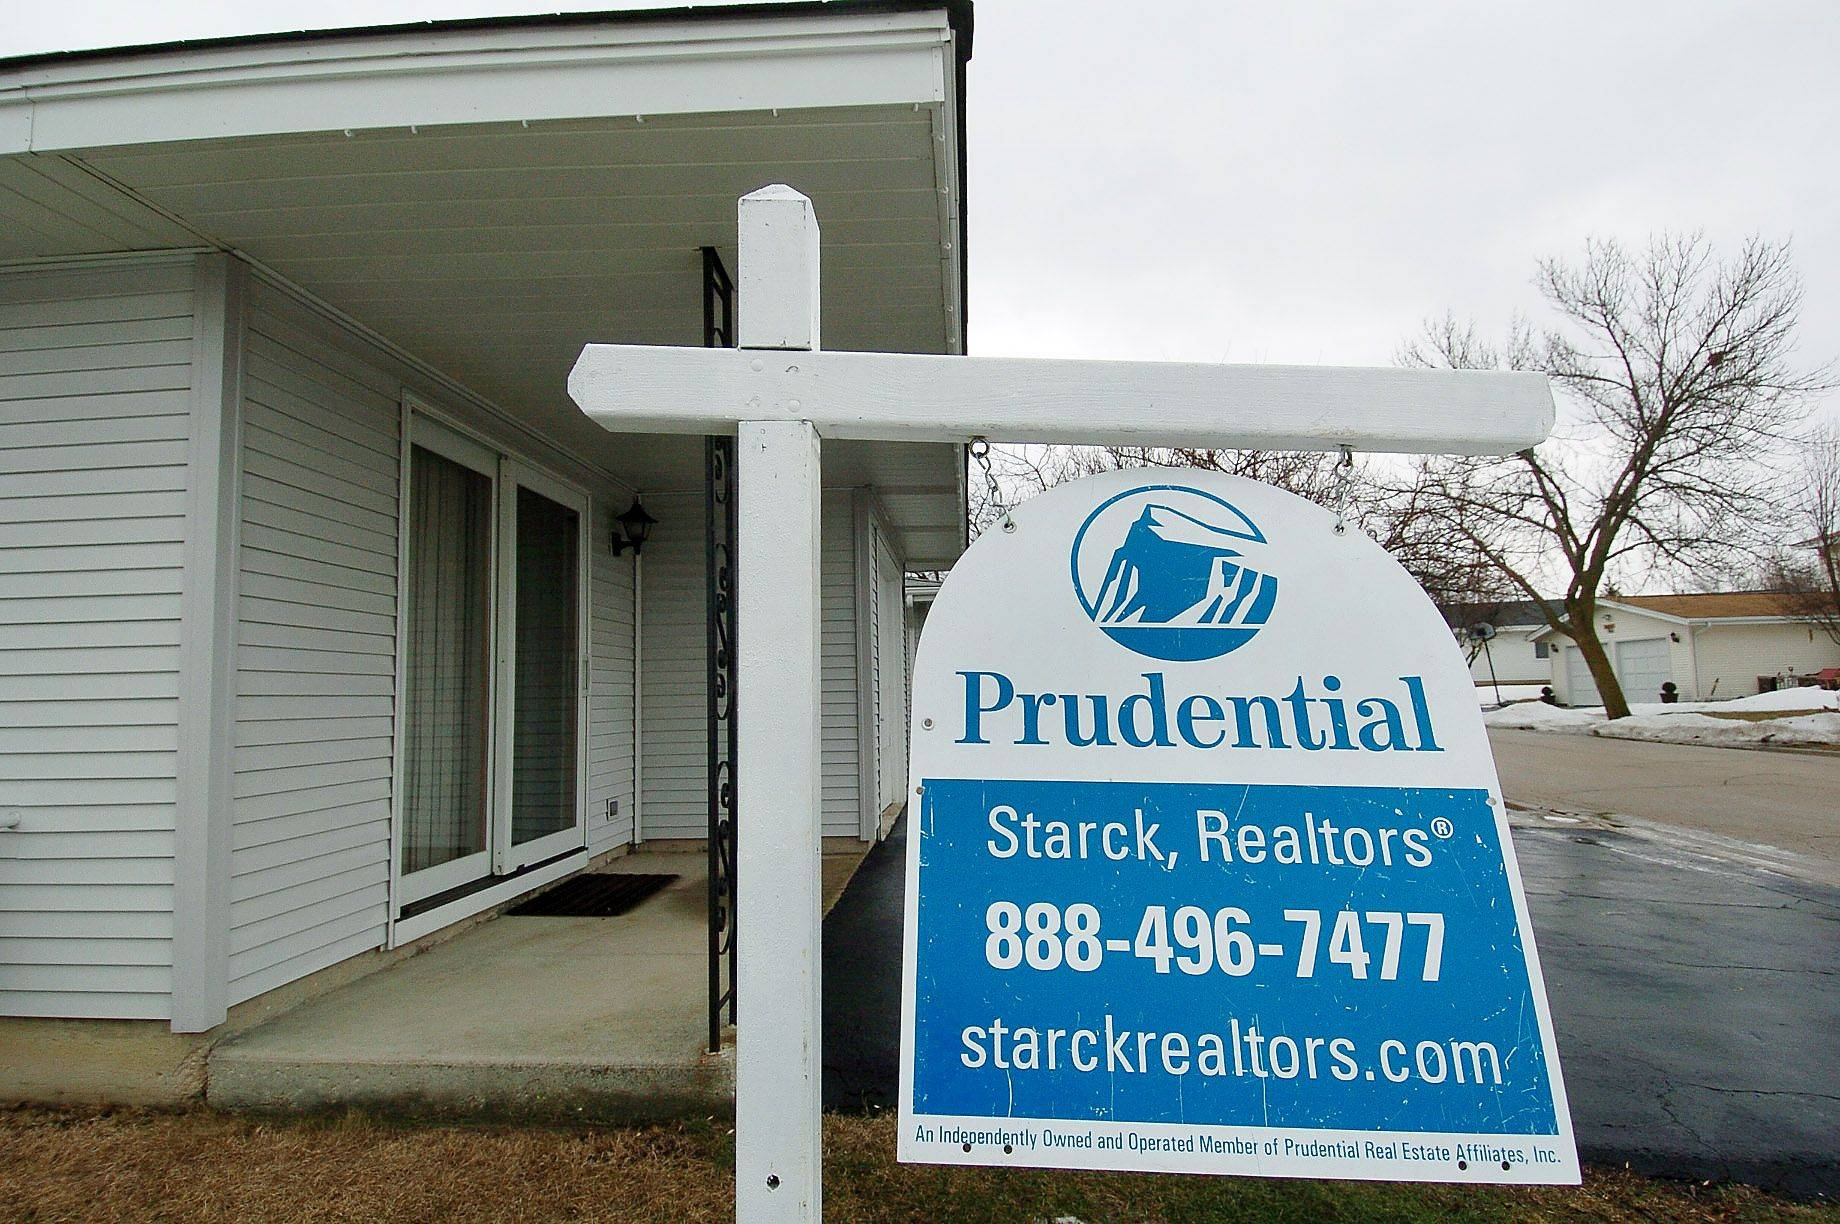 Sales of foreclosed homes dropped sharply in 2010, creating a glut of distressed homes that drags down the prices of other properties for sale.